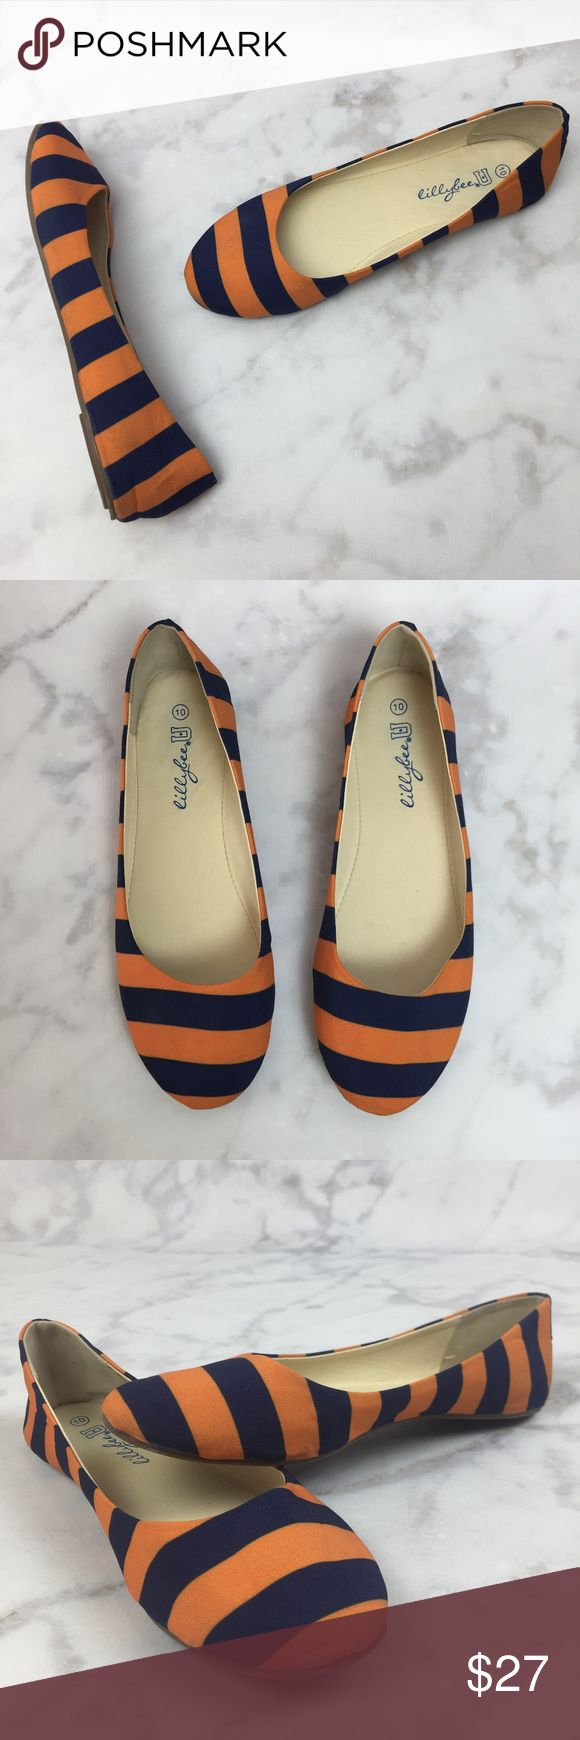 "LillyBee U Blue & Orange Striped Ballet Flats! Used once; excellent condition! LillyBee University dark blue & orange striped ballet flats. No bow or dustbag! Lightweight flexible construction. Durable poly-cotton fabric upper - some creasing from storage that will release if worn. Vegan man-made lining. Some minor discoloration spots from being worn & where manufacturer sole glue transferred to fabric. Size 10 (half sizes should size down to closest whole size); inner sole approx. 10½""…"